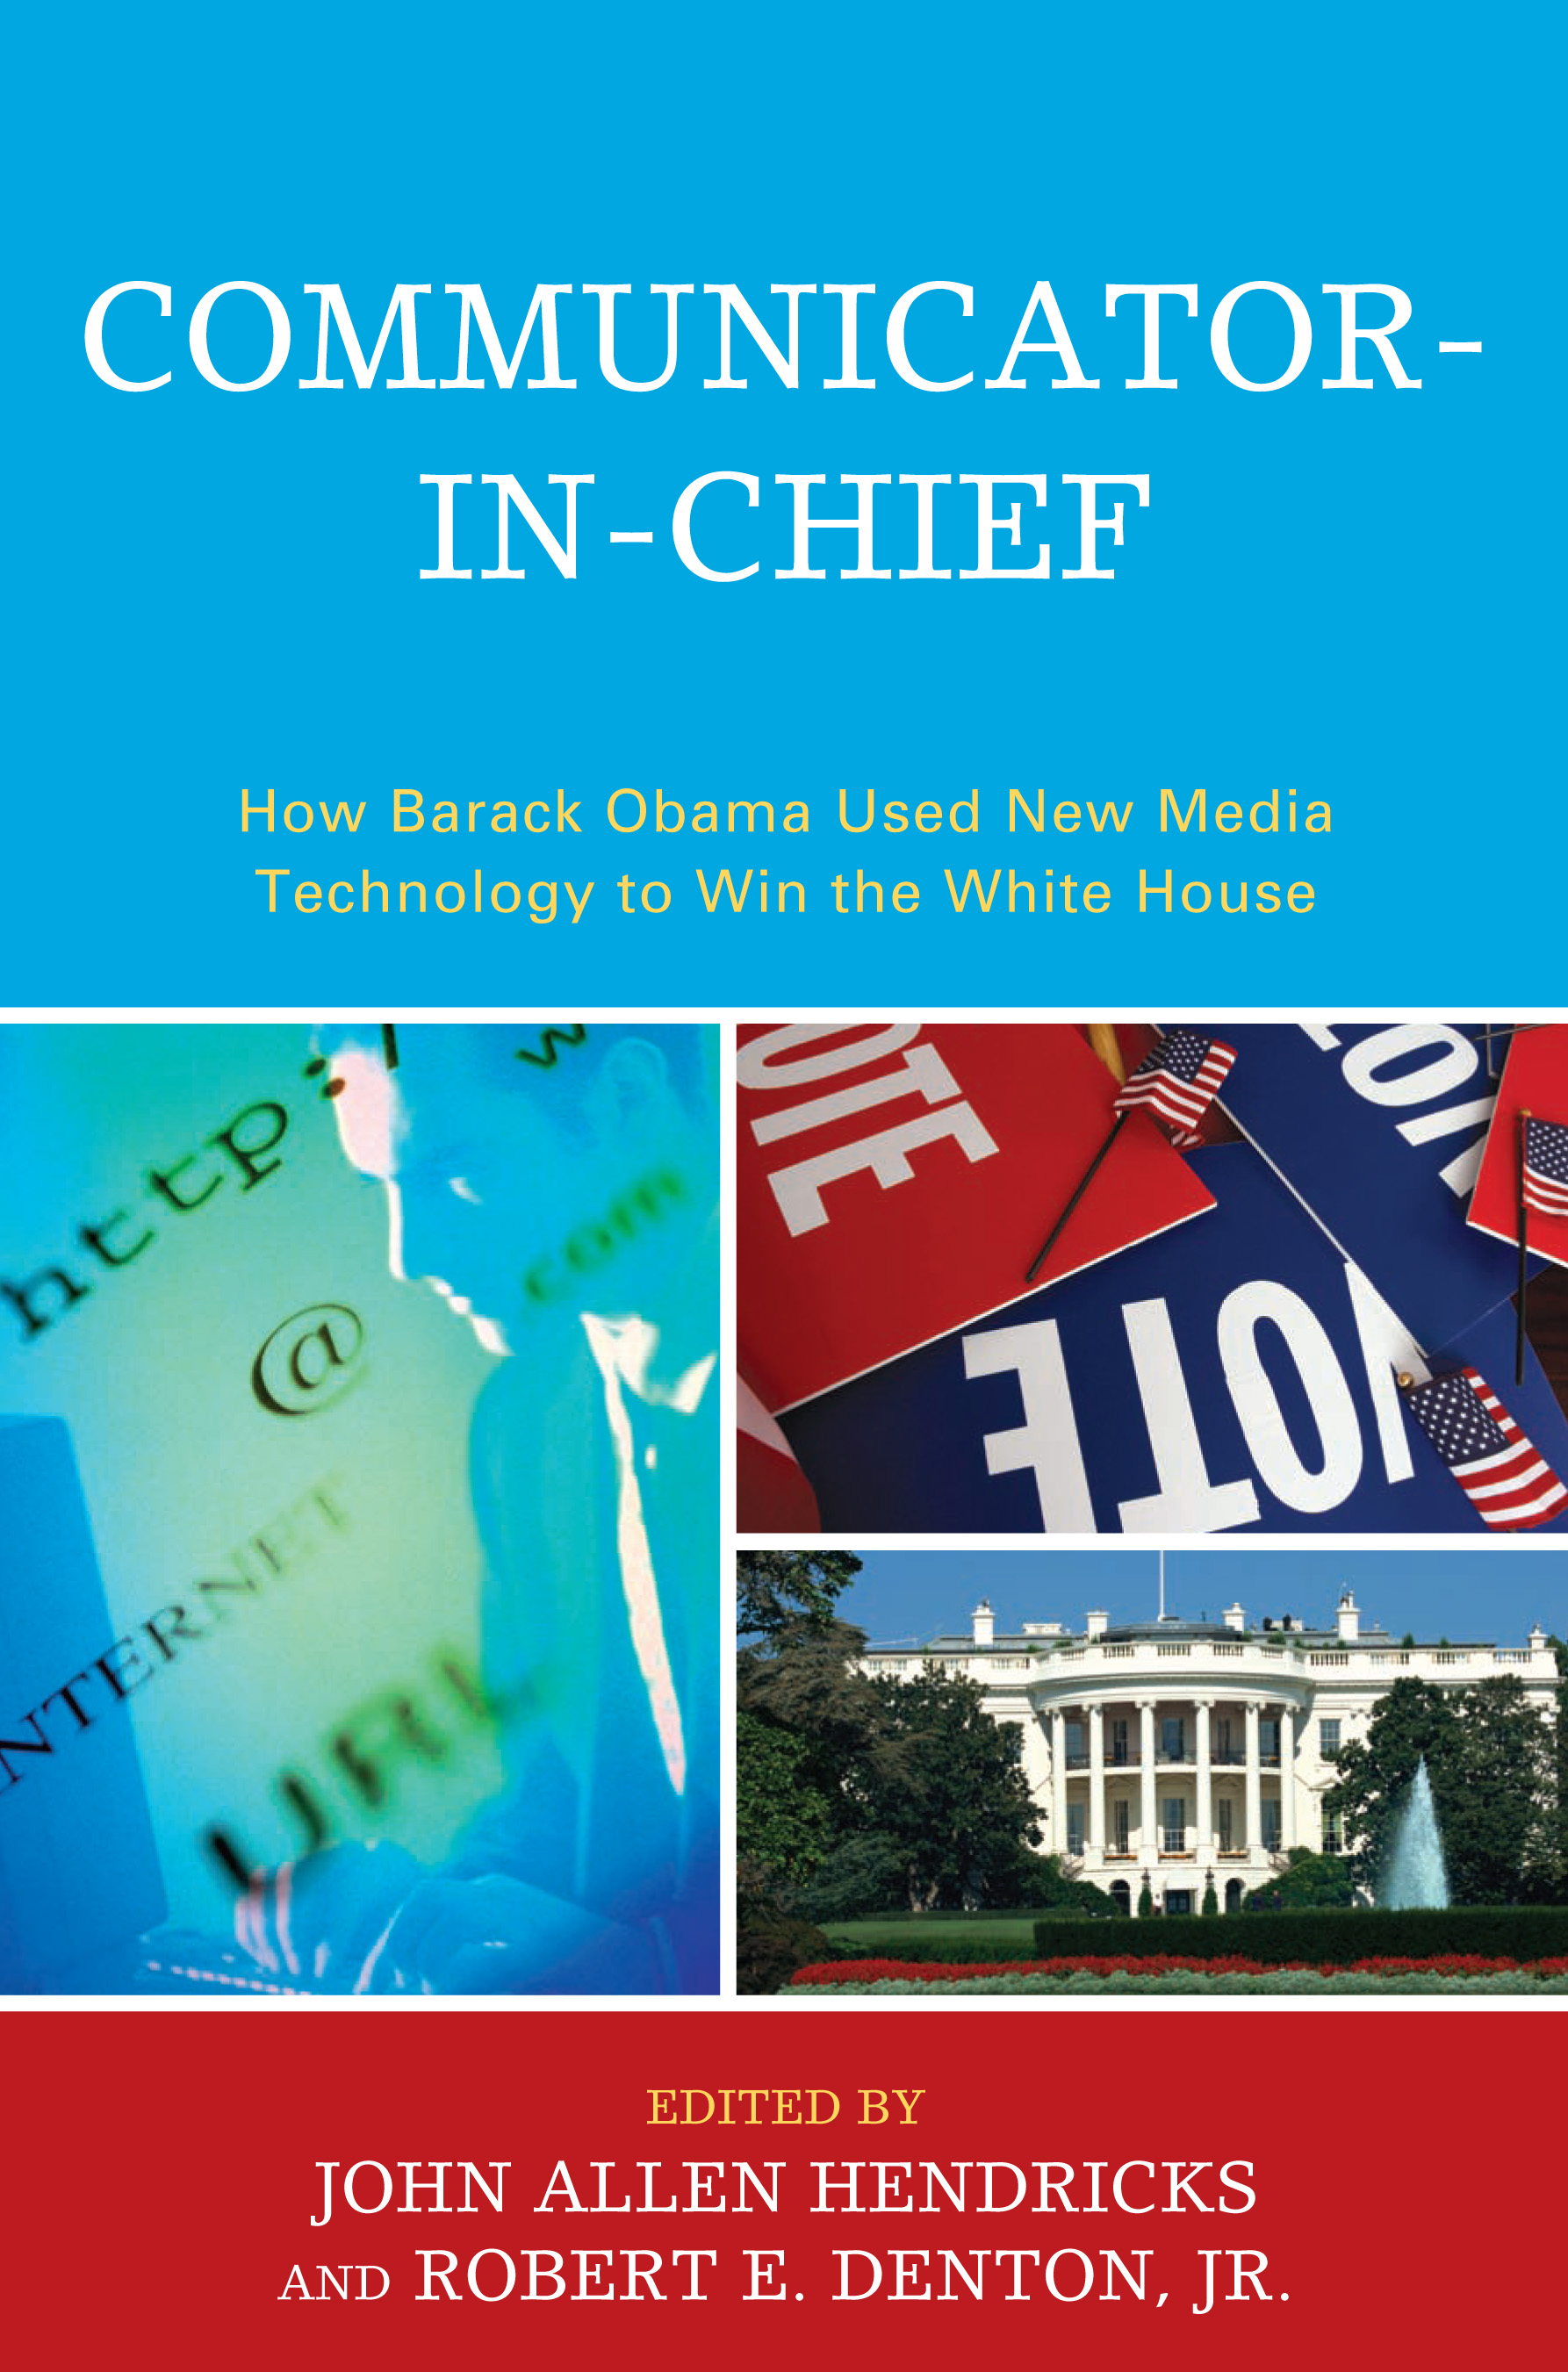 Communicator-in-Chief By: Brandon C. Waite,Eric E. Otenyo,Frederic I. Solop,Jenn Burleson Mackay,Jody C. Baumgartner,Jonathan S. Morris,Larry Powell,Melissa M. Smith,Nancy Snow,Robert E. Denton Jr.